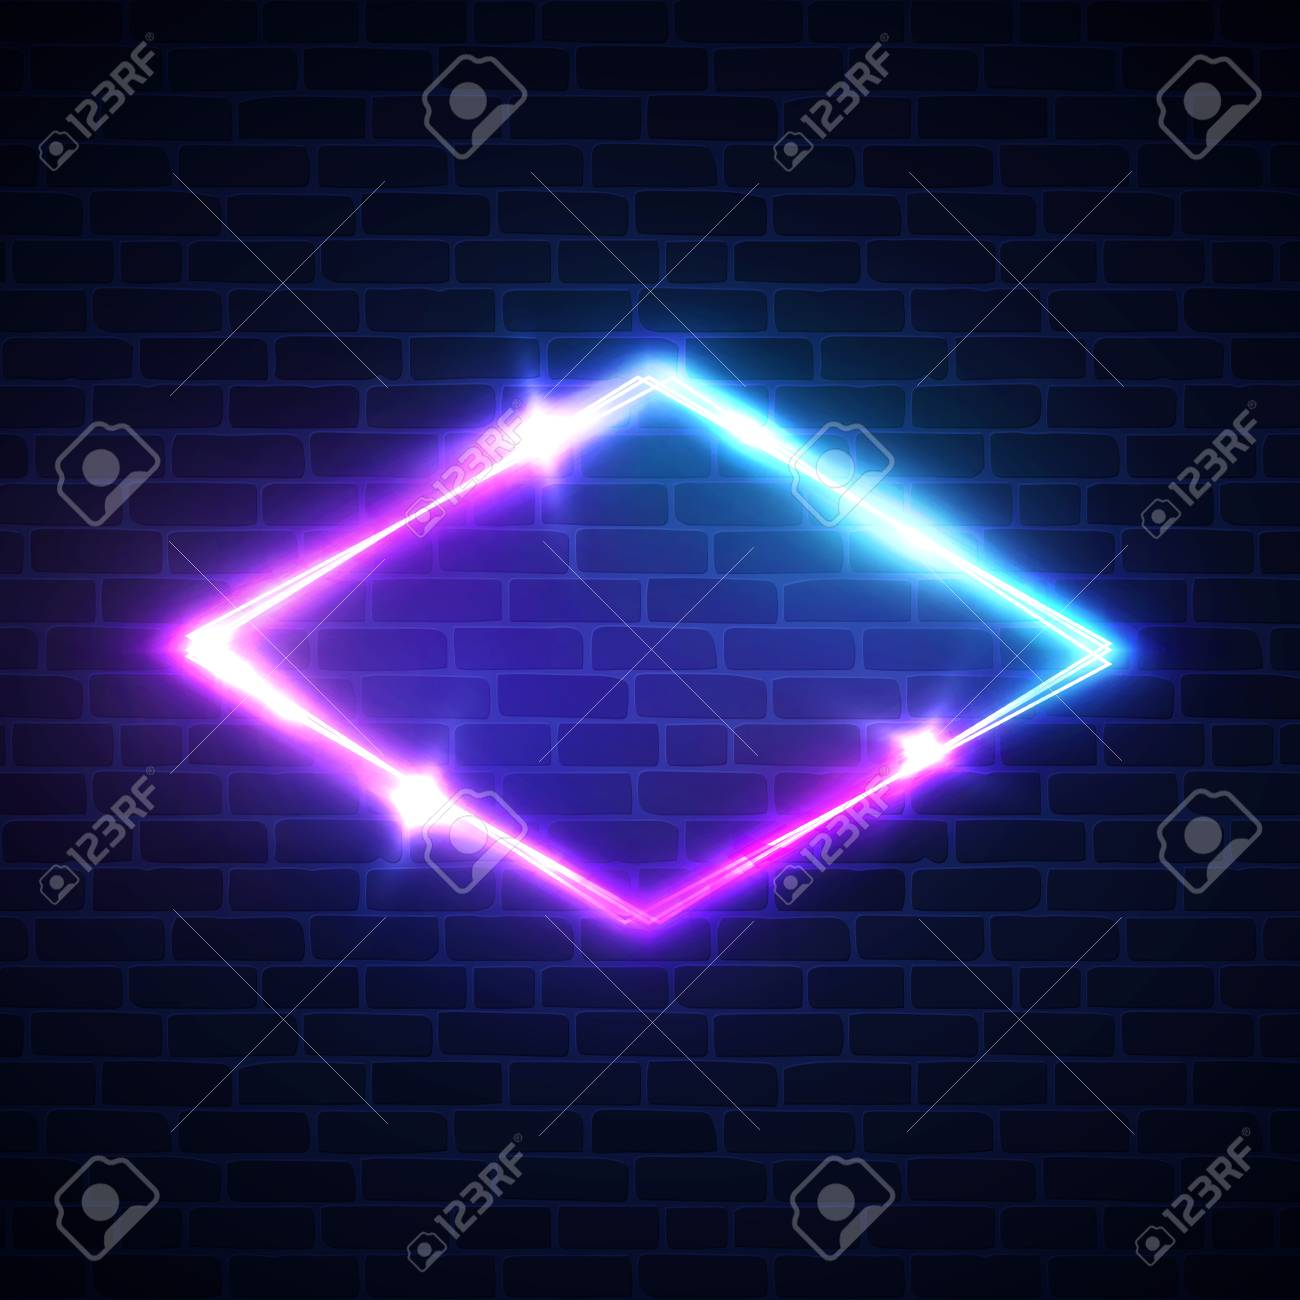 Night club neon light rhomb on brick texture  3d lozenge sign